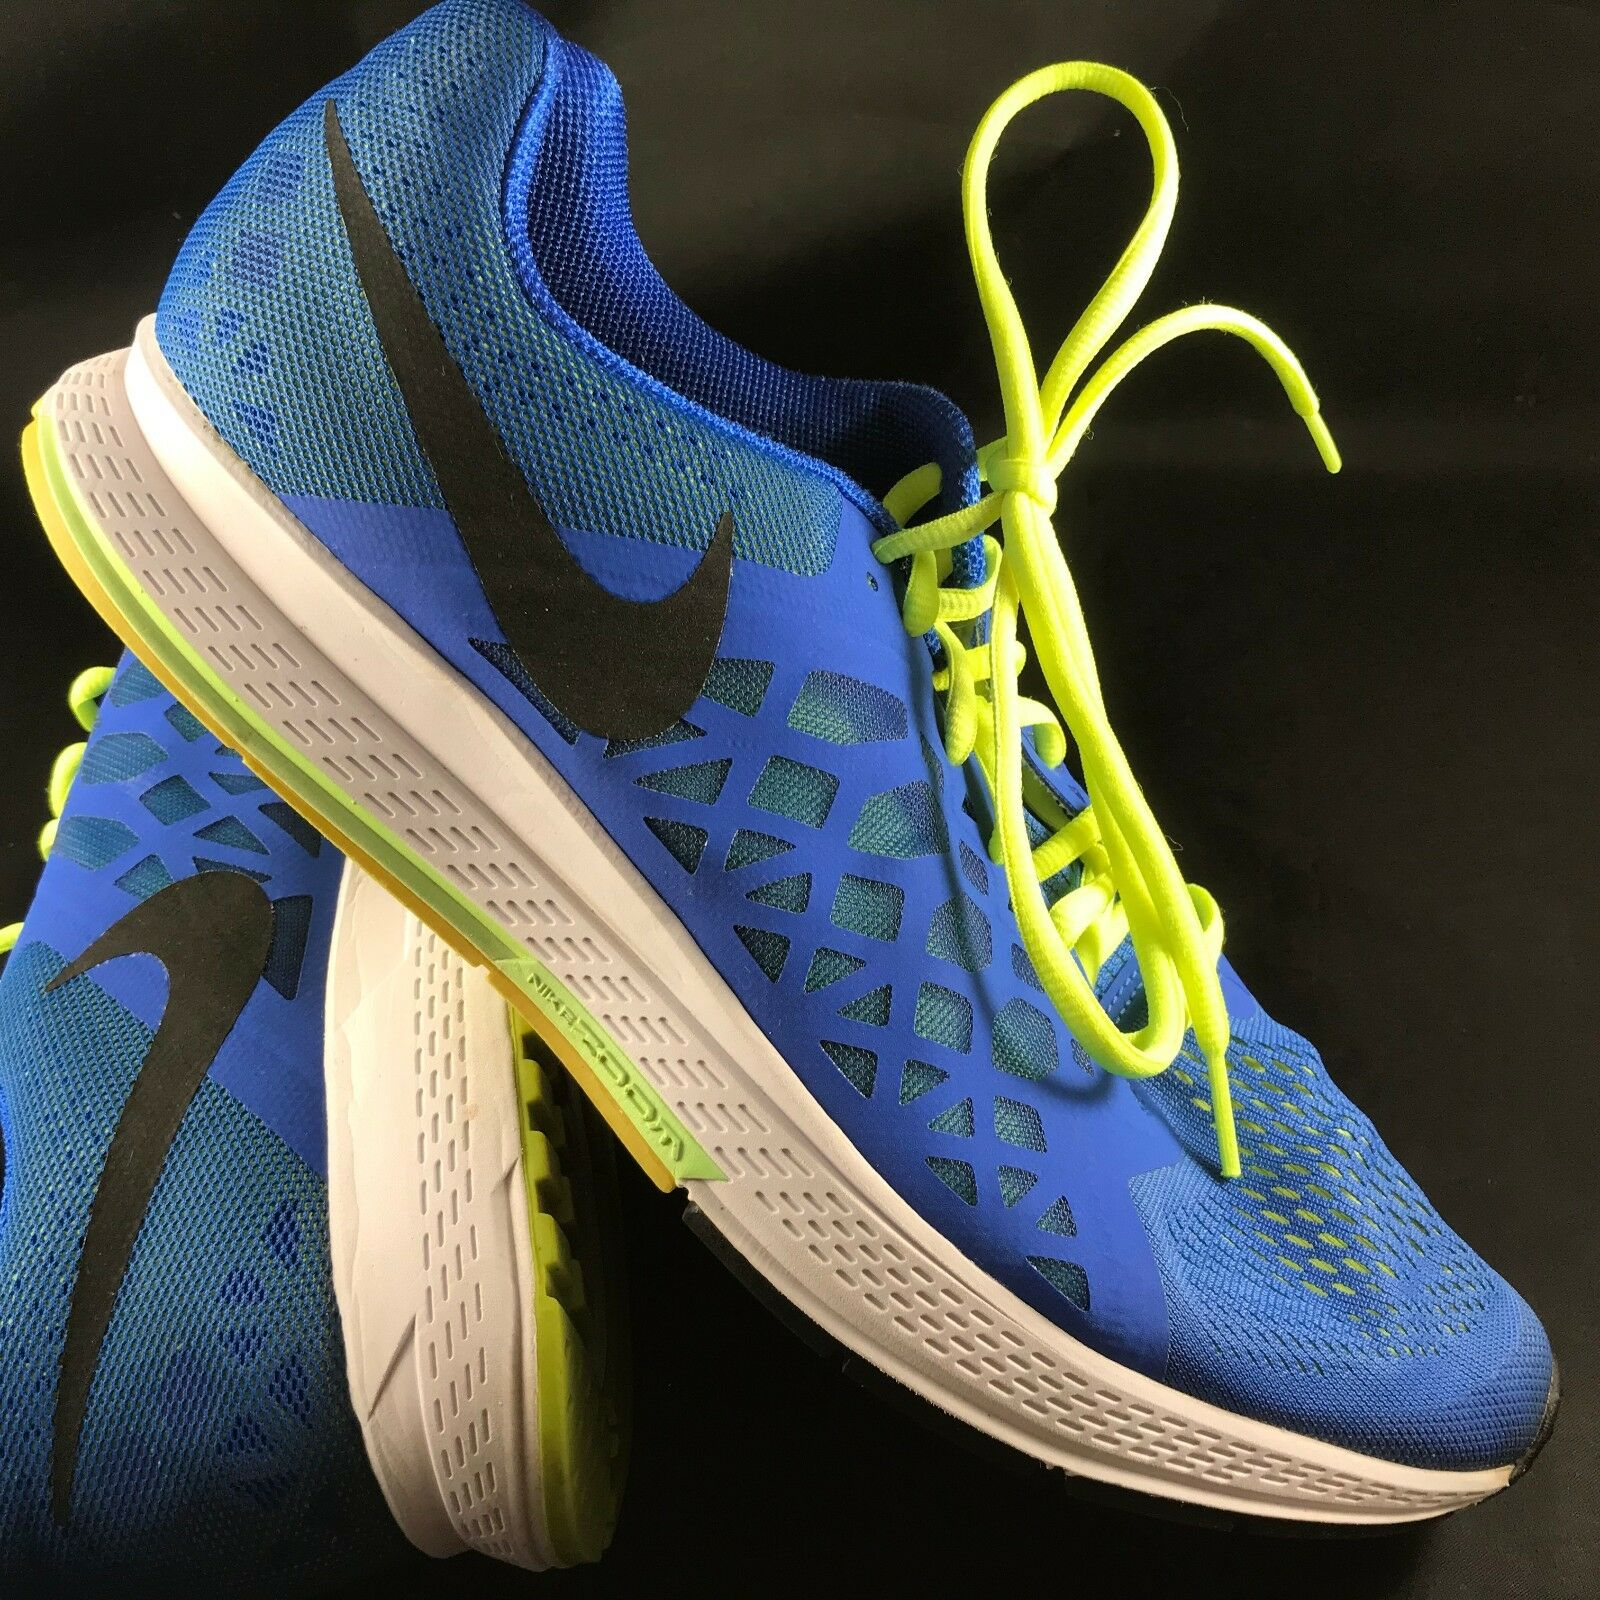 NIKE PEGASUS 31 Medium bluee Volt White Mens 13 47.5 EUR Excellent condition